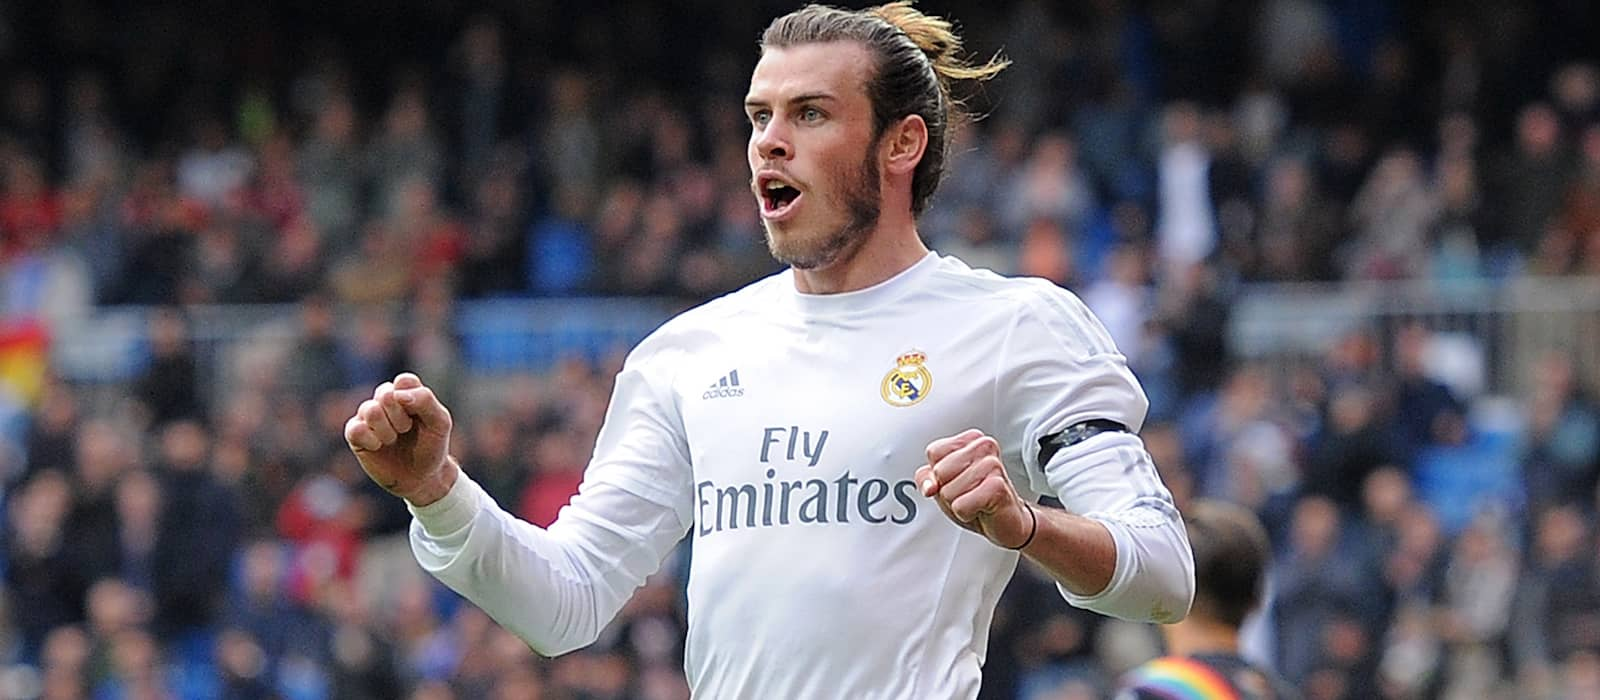 Wales manager reveals Gareth Bale can leave training camp to secure Man United move